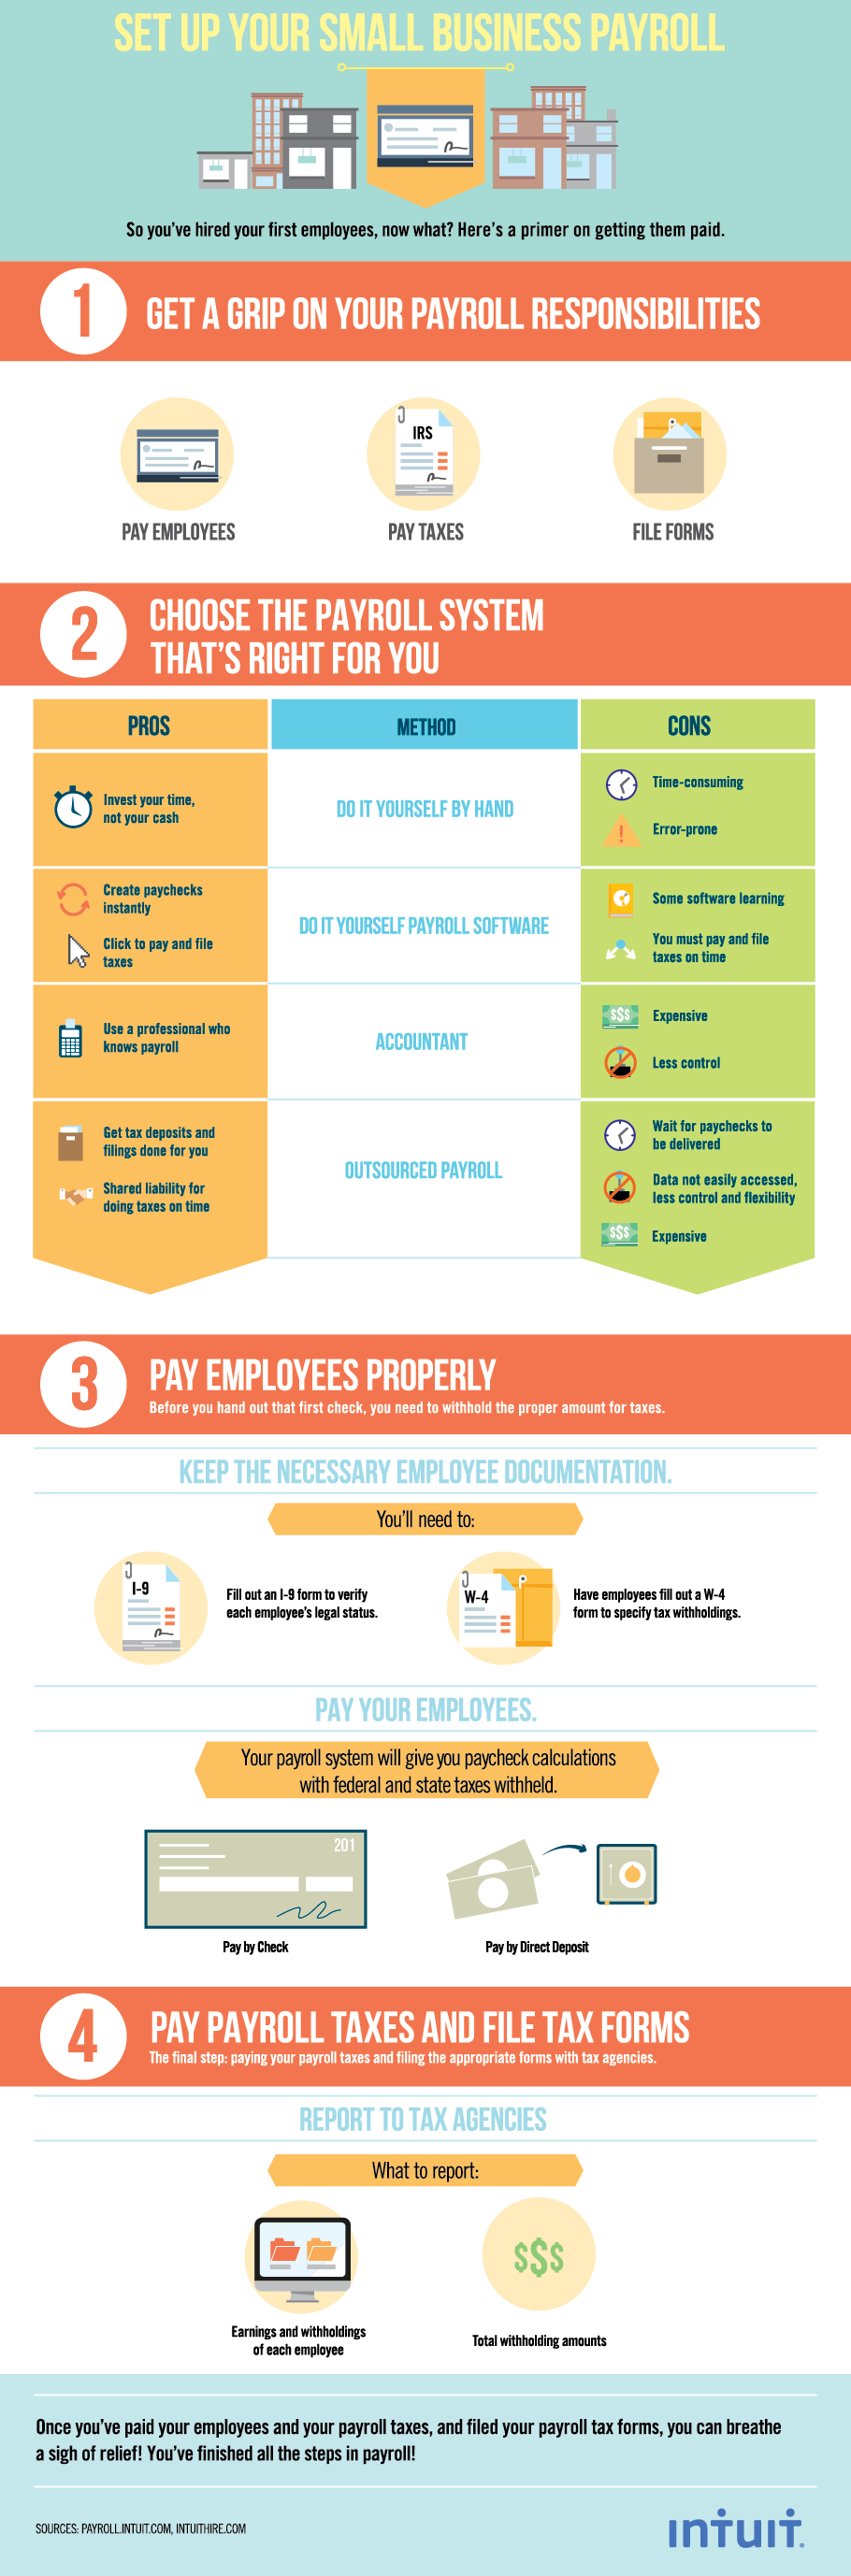 Set Up Your Small Business Payroll (Infographic) - Intuit Payroll